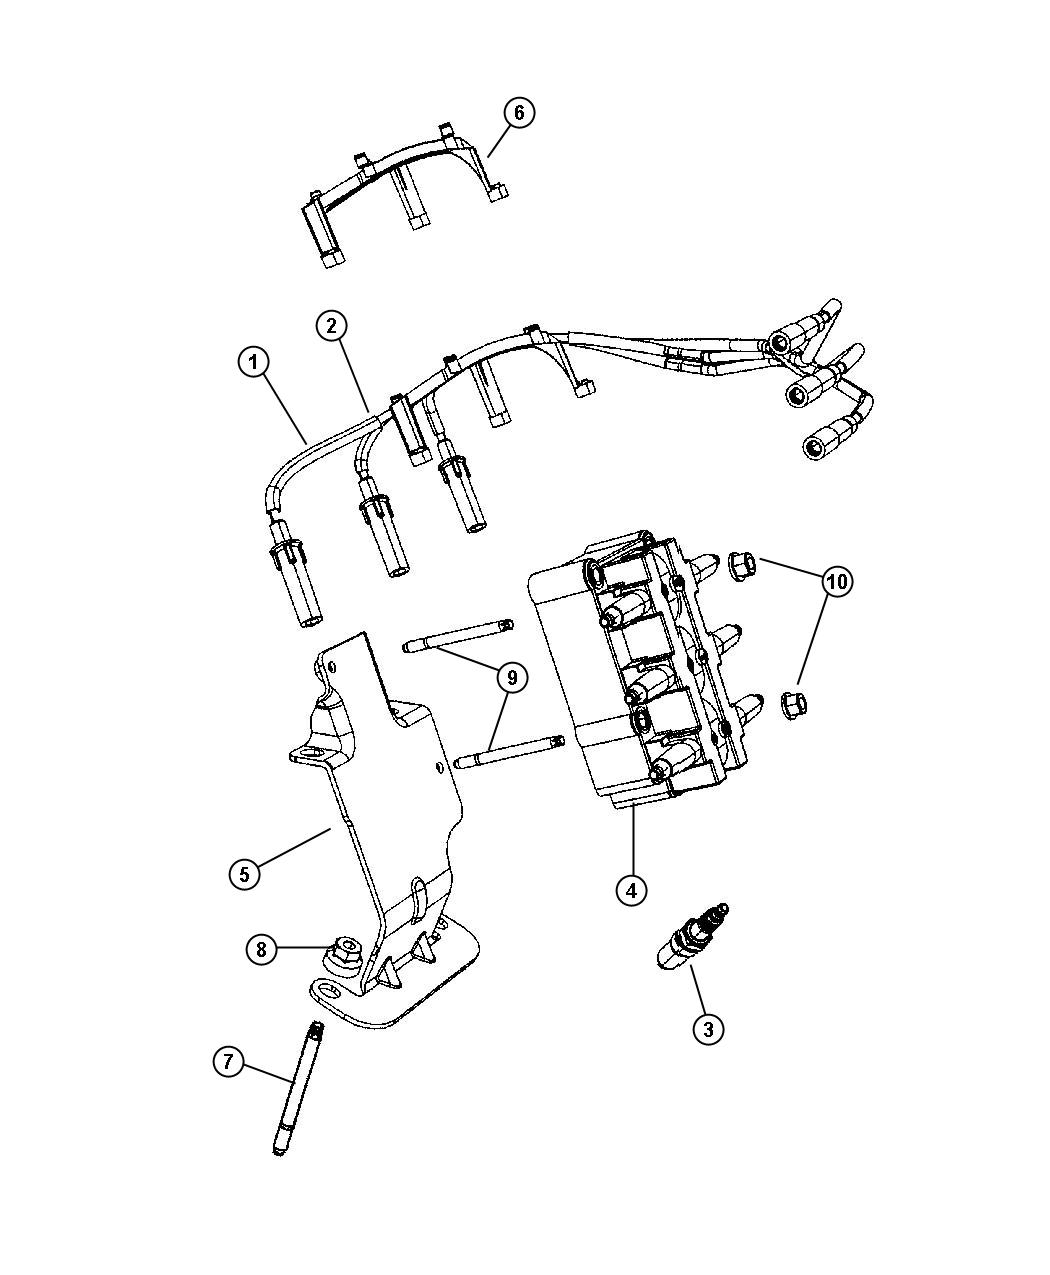 41te Transmission Diagram Pictures To Pin